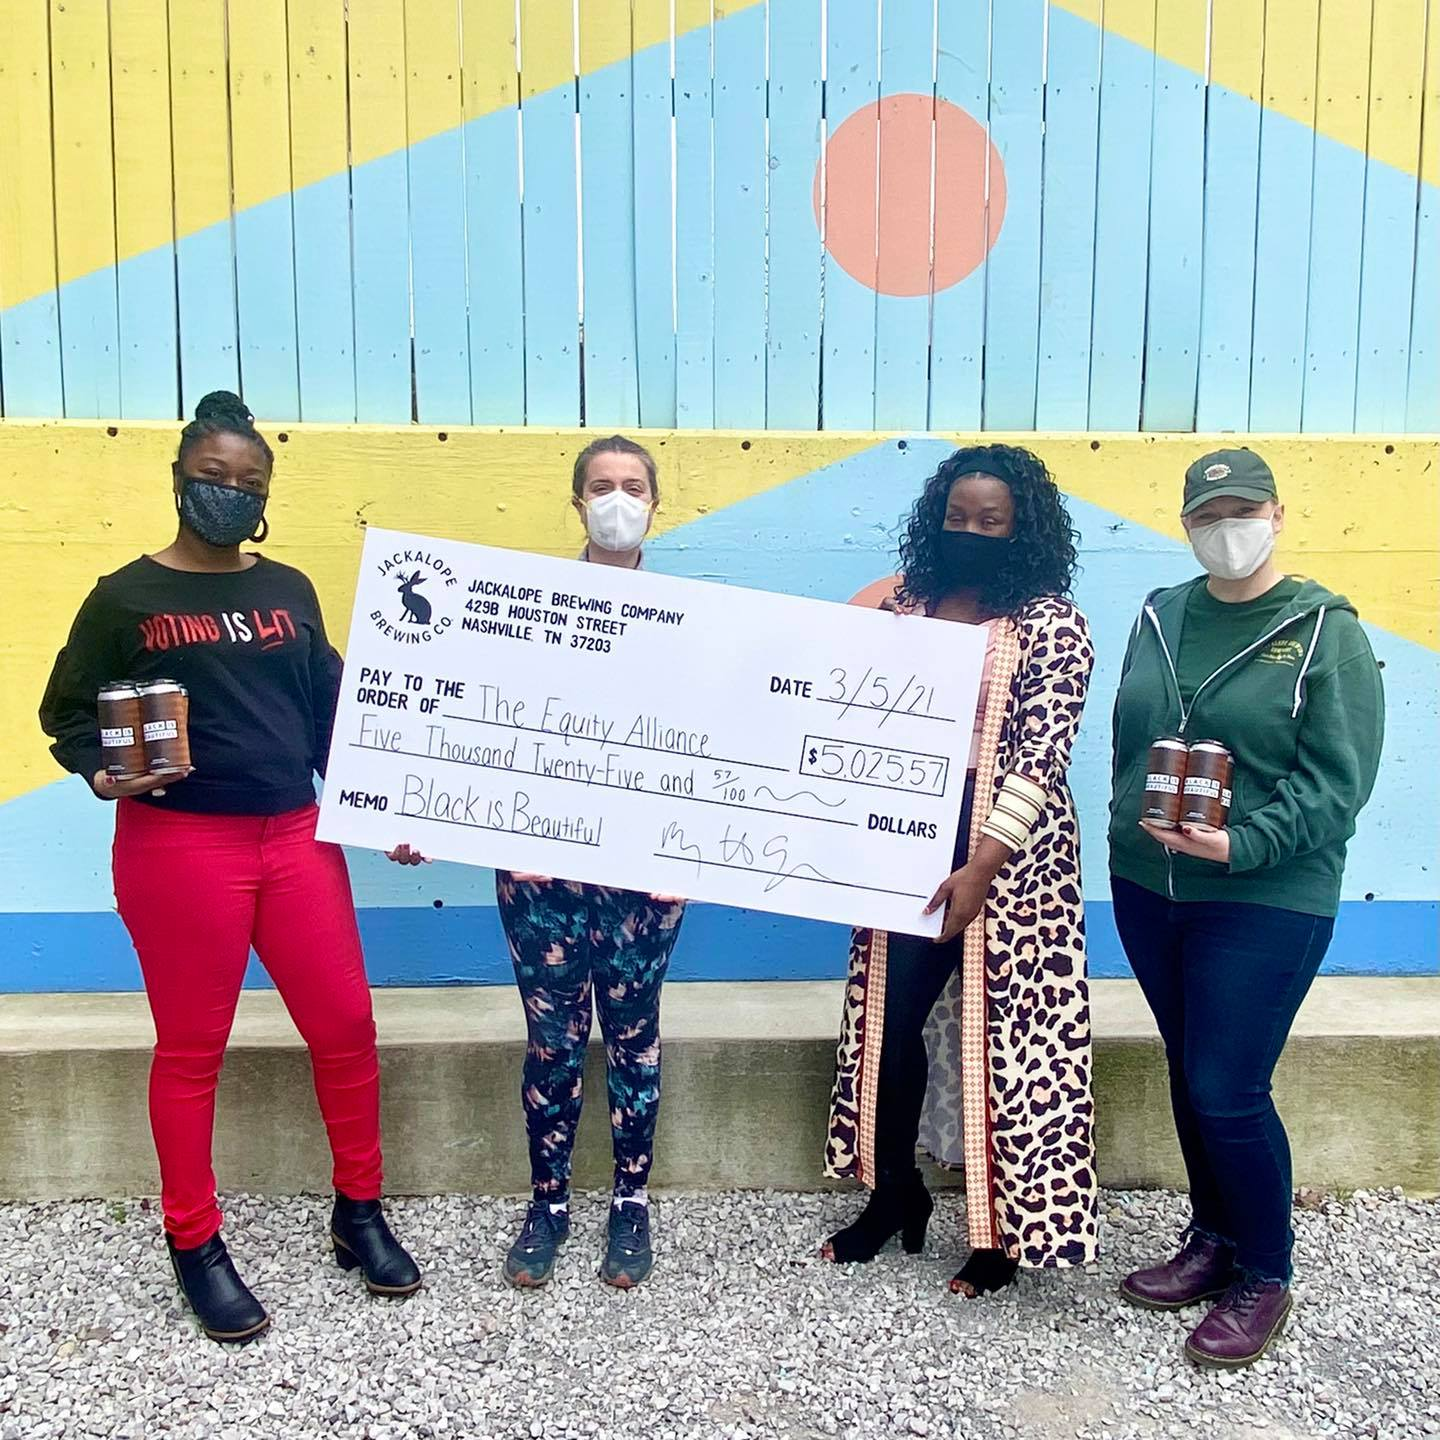 Jackalope Brewing Donates to The Equity Alliance